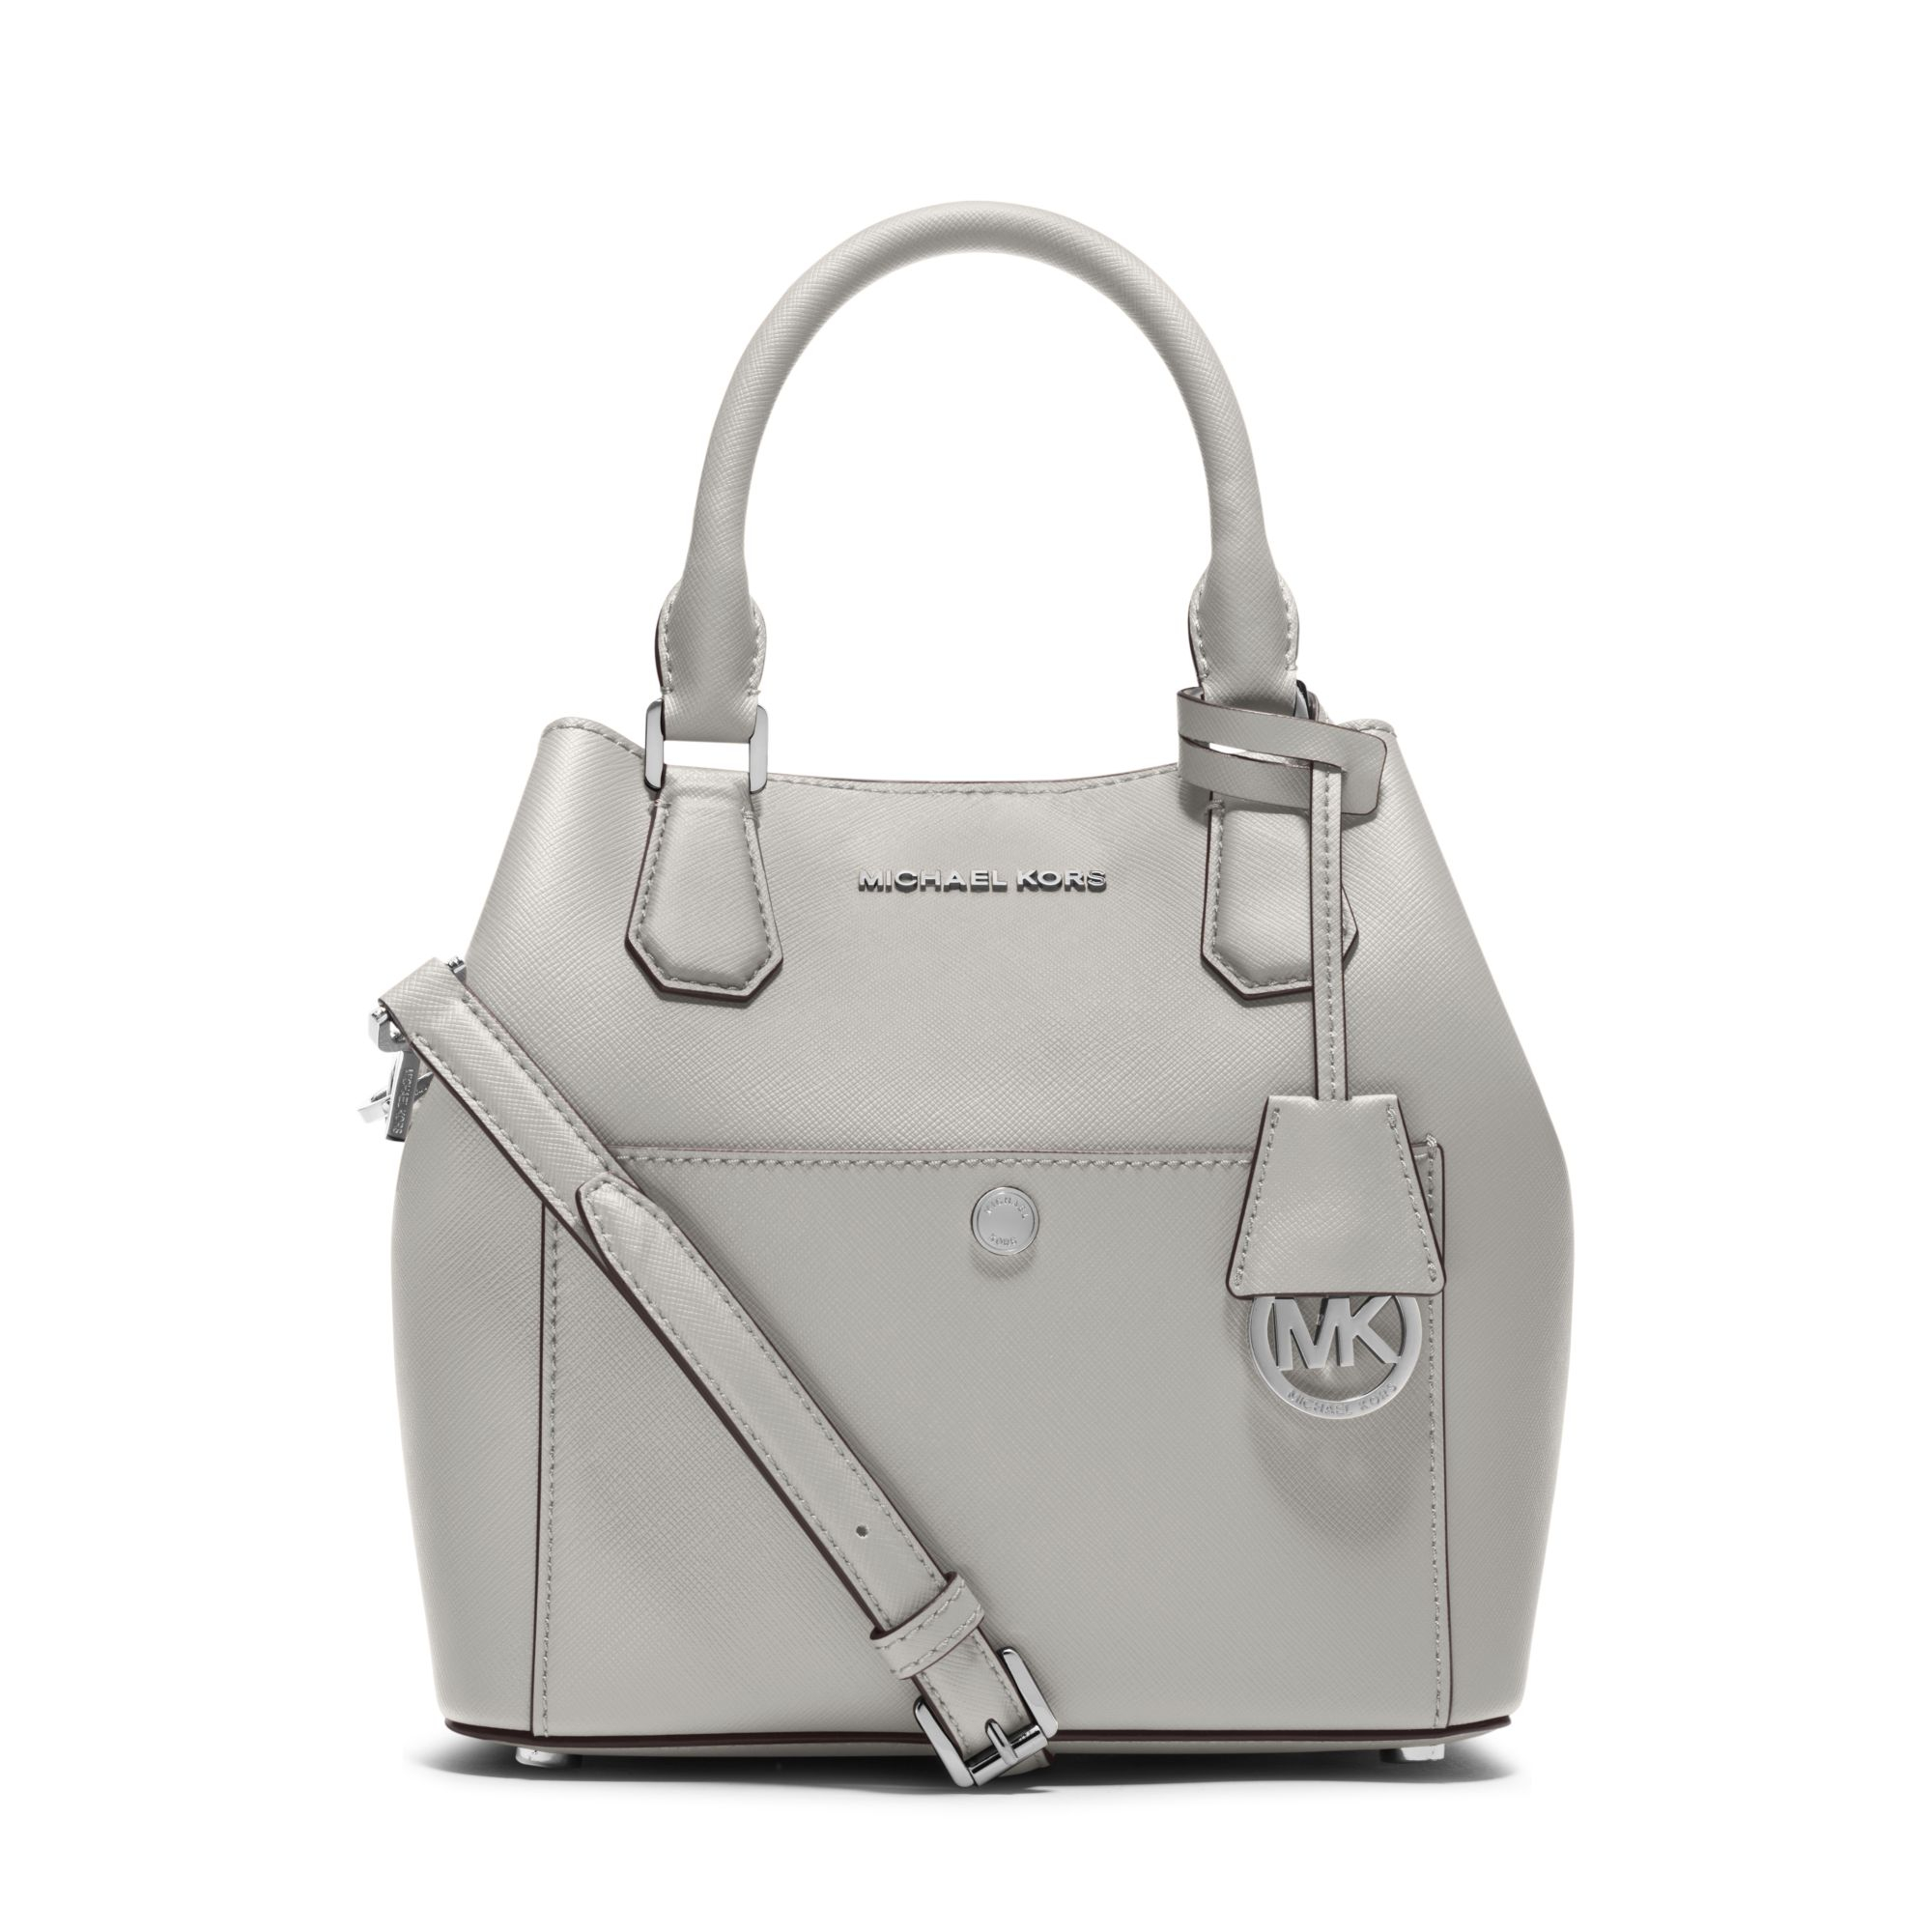 8aa377d594e9 ... ebay lyst michael kors greenwich medium saffiano leather satchel in  white 6674f 8adec